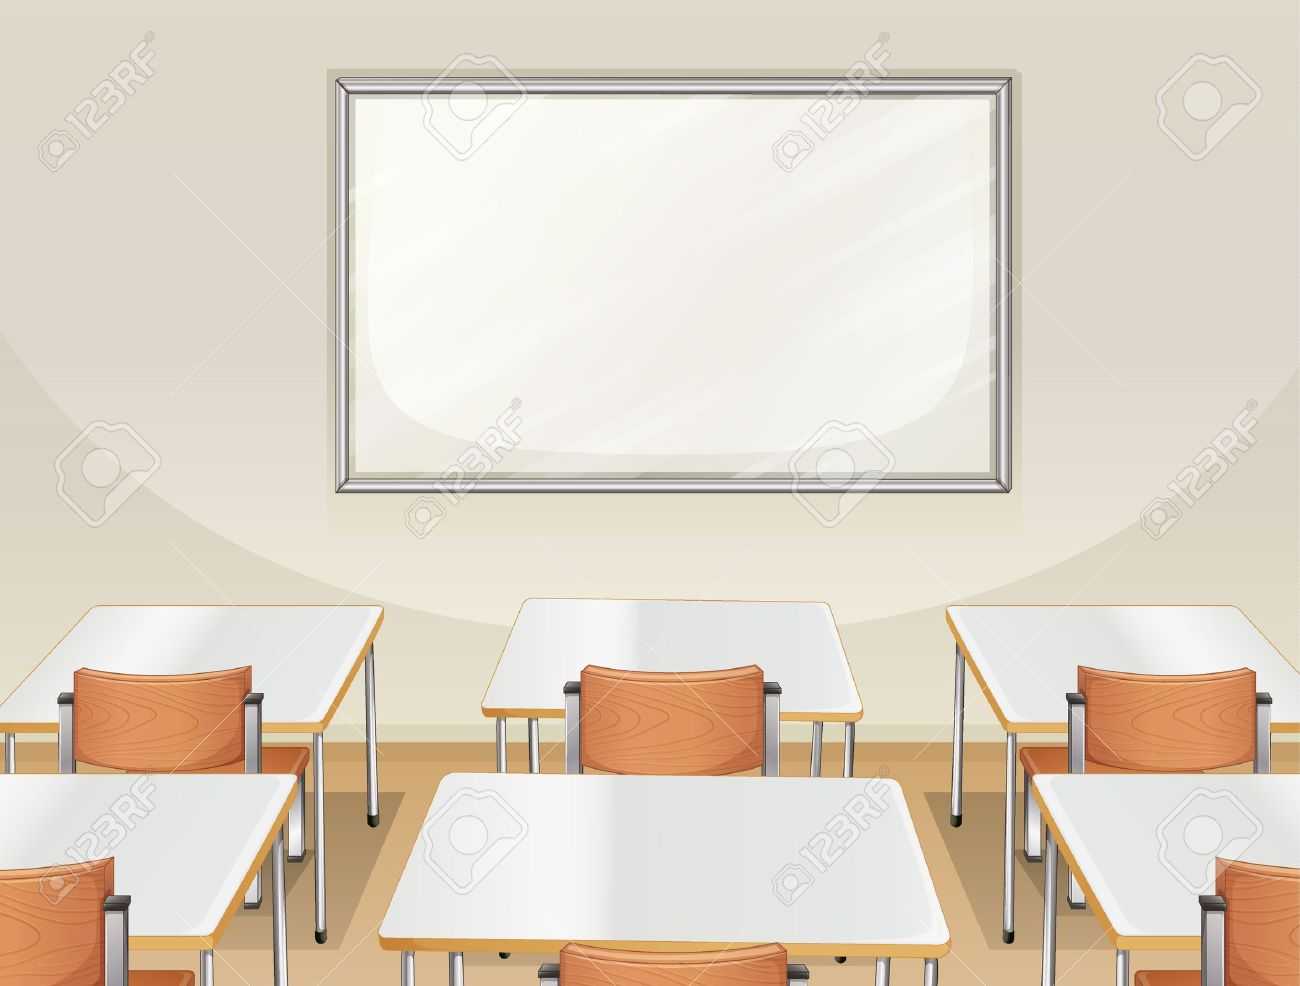 Illustration of an empty classroom with white board, tables and chairs Stock Vector - 17358290